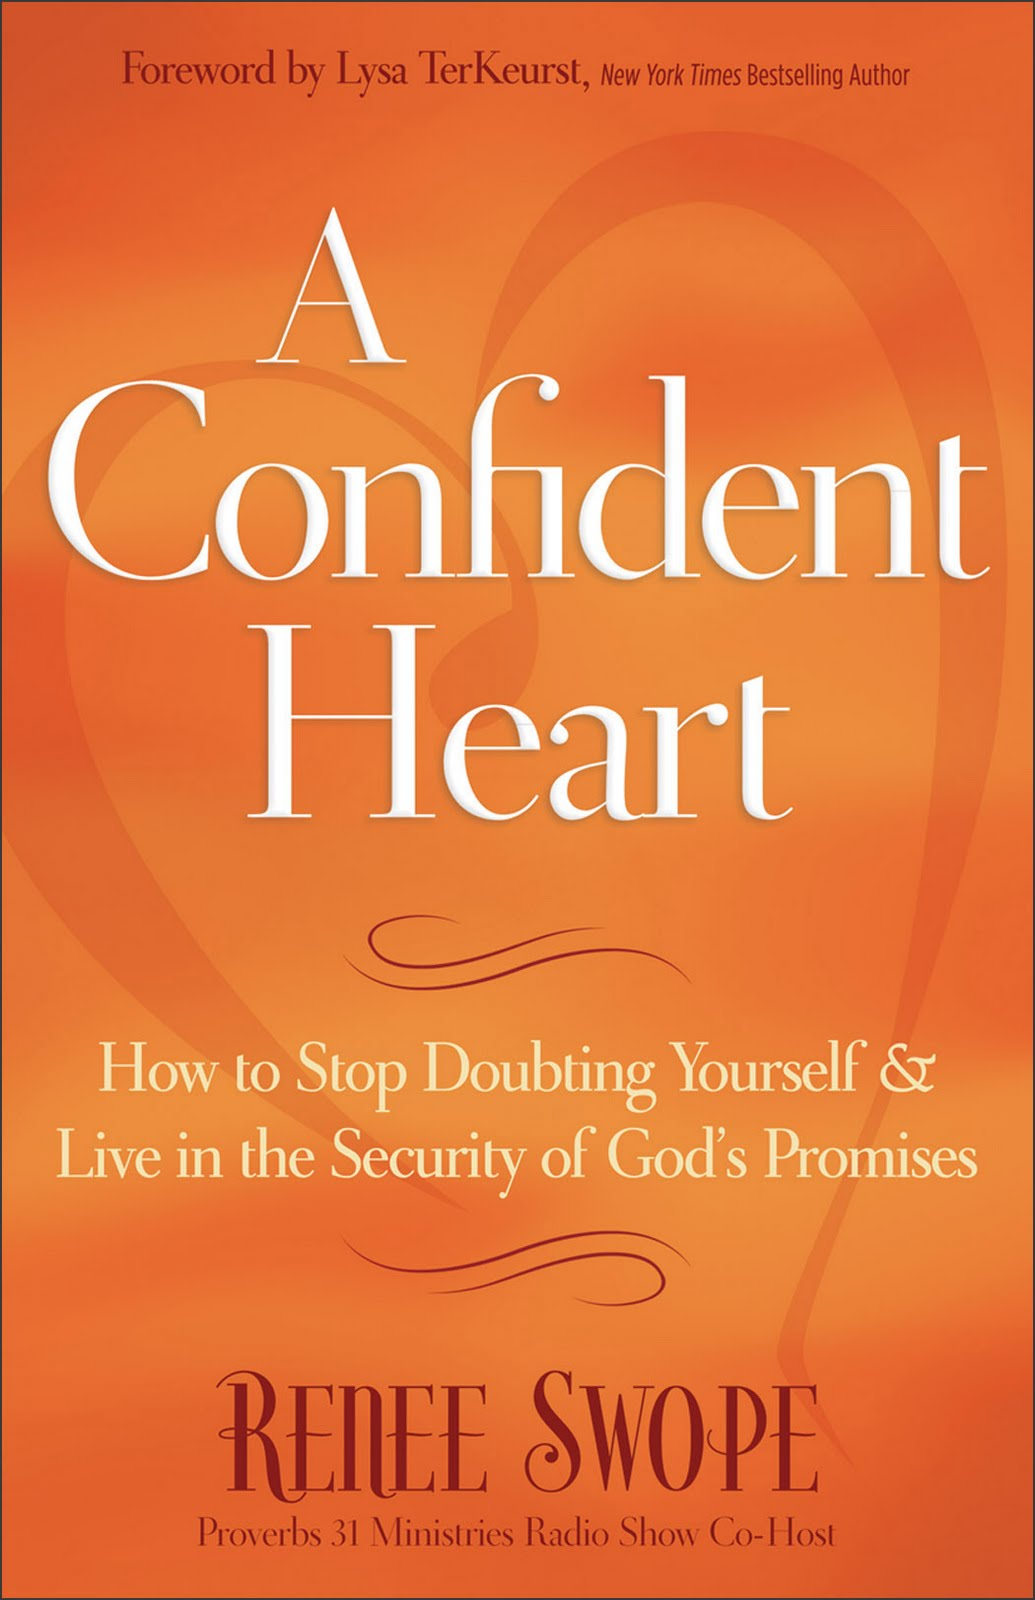 Confidence Quotes For Women In The Bible. QuotesGram Confidence Quotes For Women